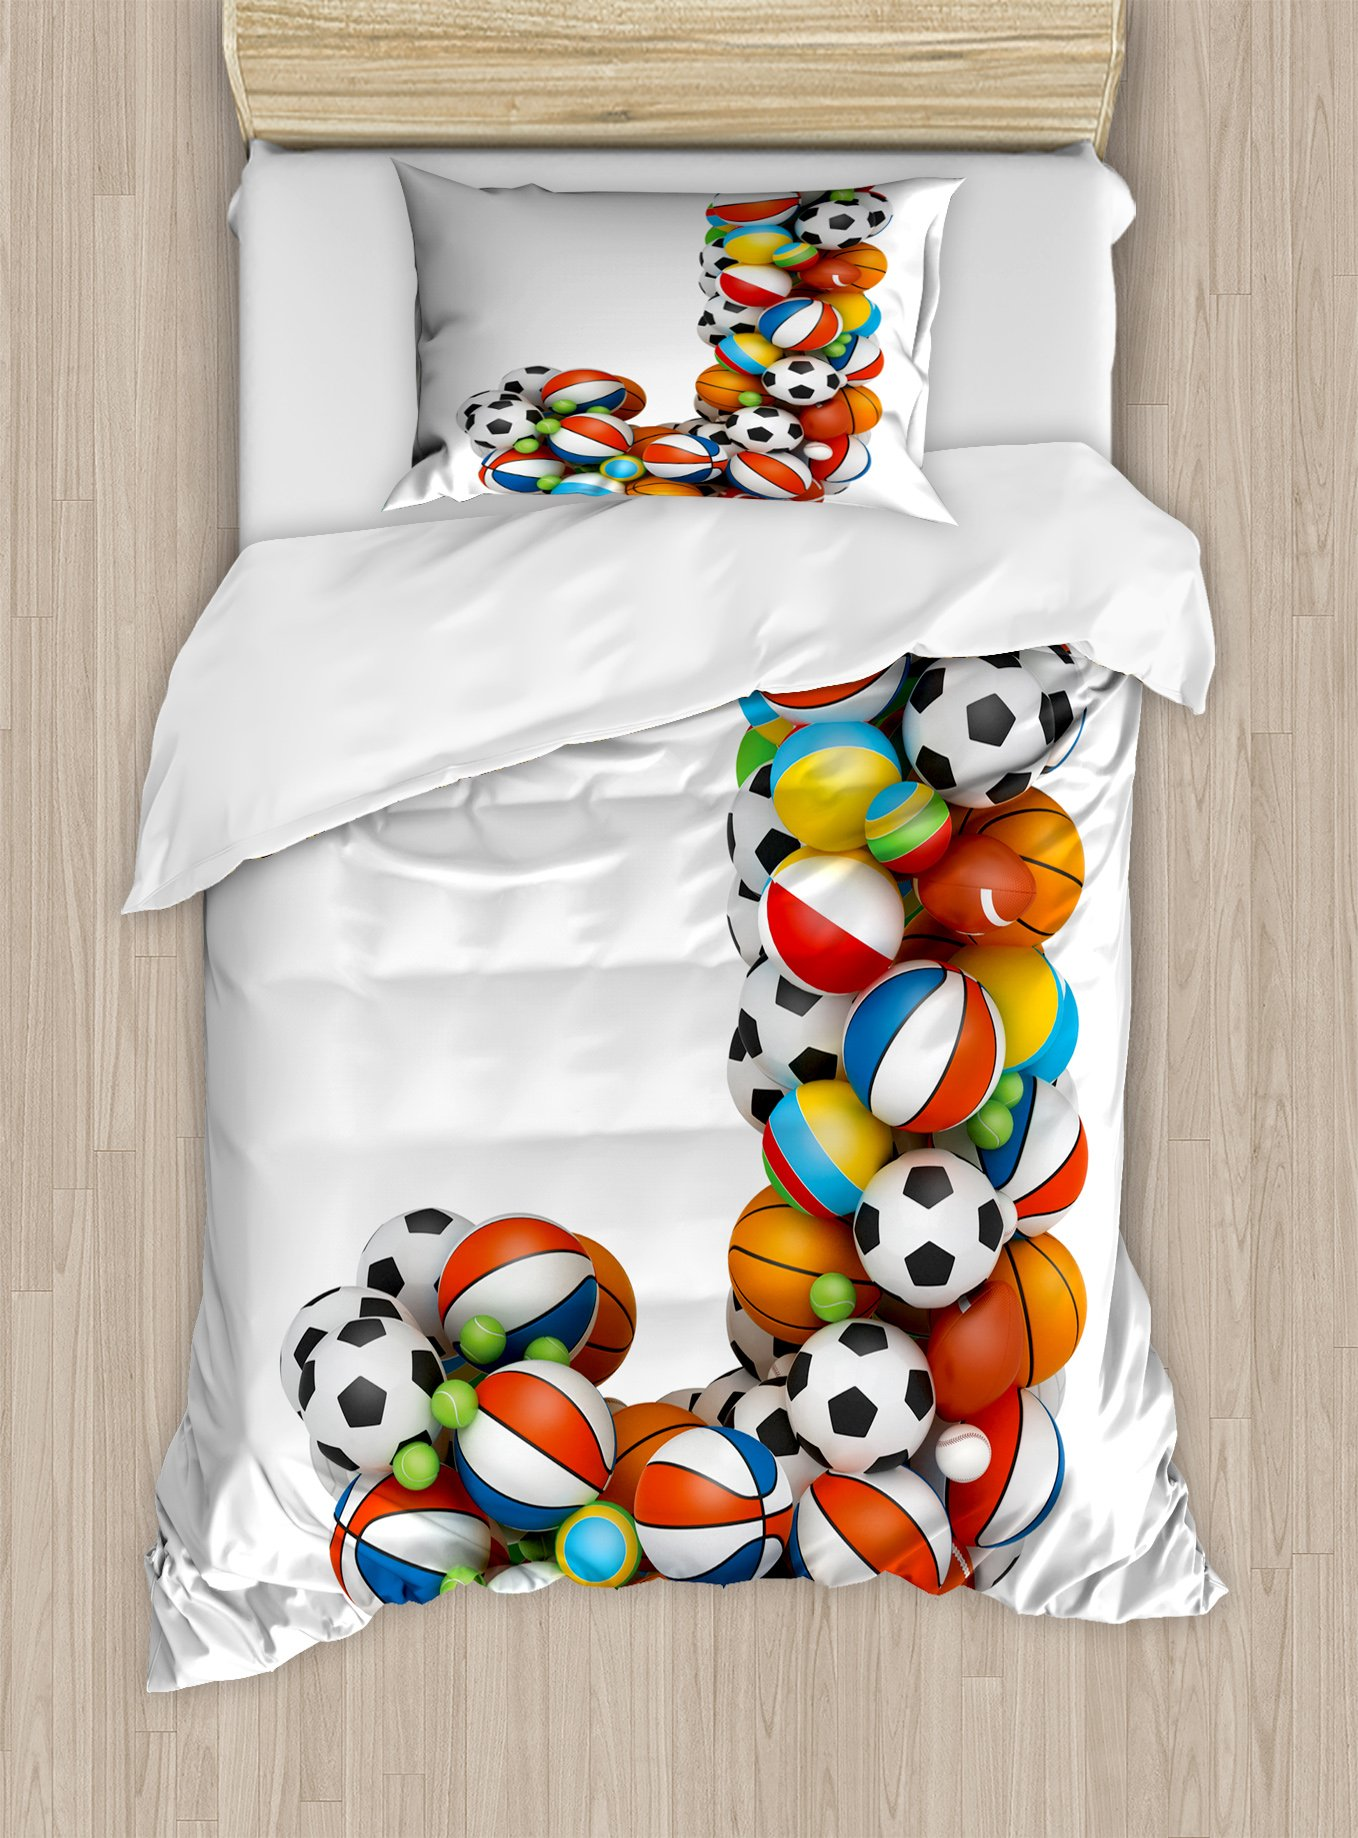 Ambesonne Letter J Duvet Cover Set Twin Size, Letter J Capitalized Sporting Goods Basketball Football Pigskin Fun Games Design, Decorative 2 Piece Bedding Set with 1 Pillow Sham, Multicolor